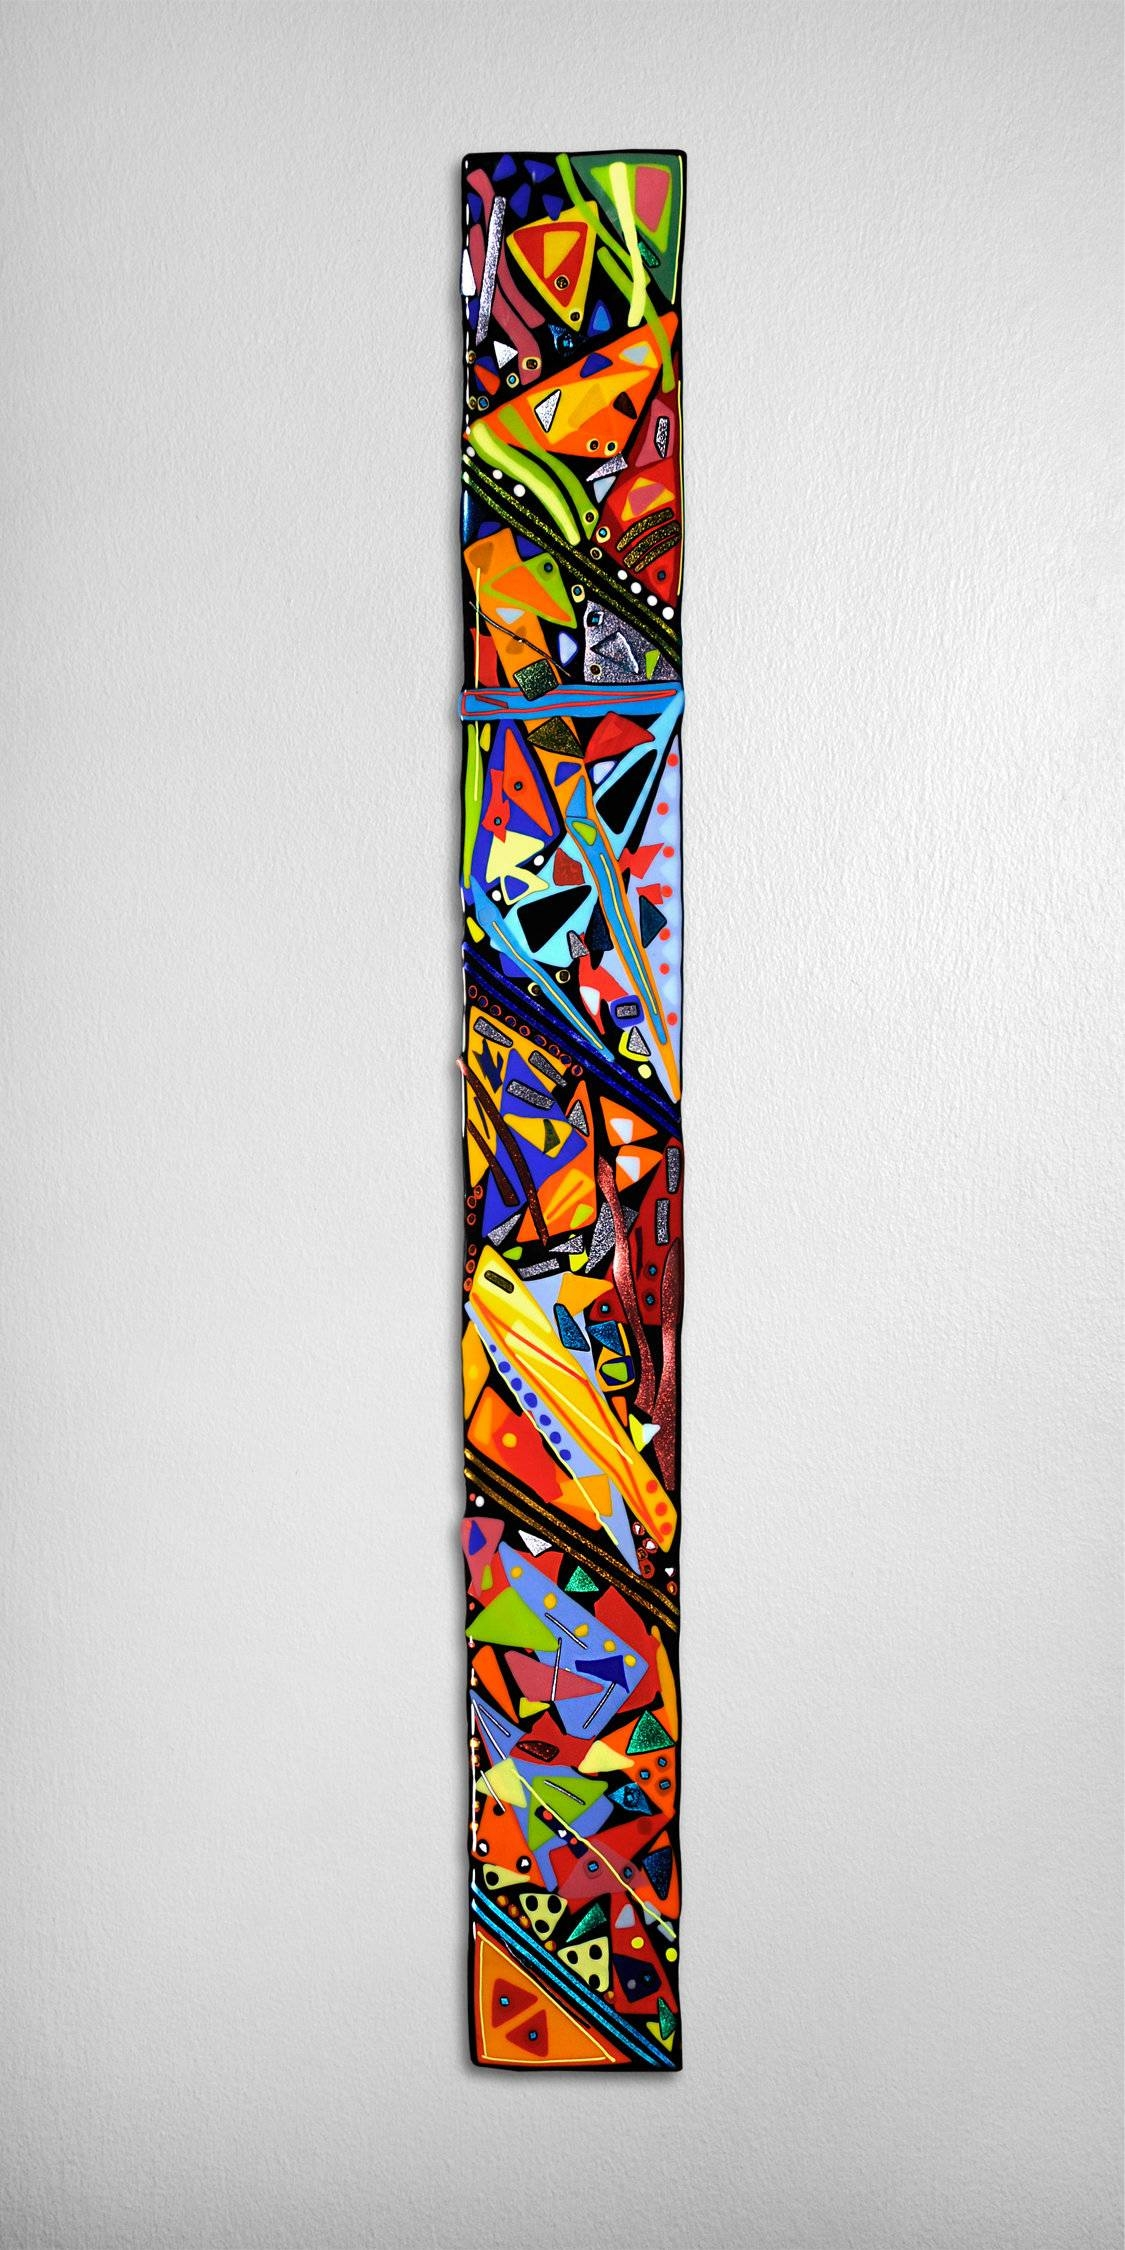 Mardi Gras Wall Panelhelen Rudy (Art Glass Wall Sculpture With Regard To Current Glass Wall Art Panels (View 18 of 20)